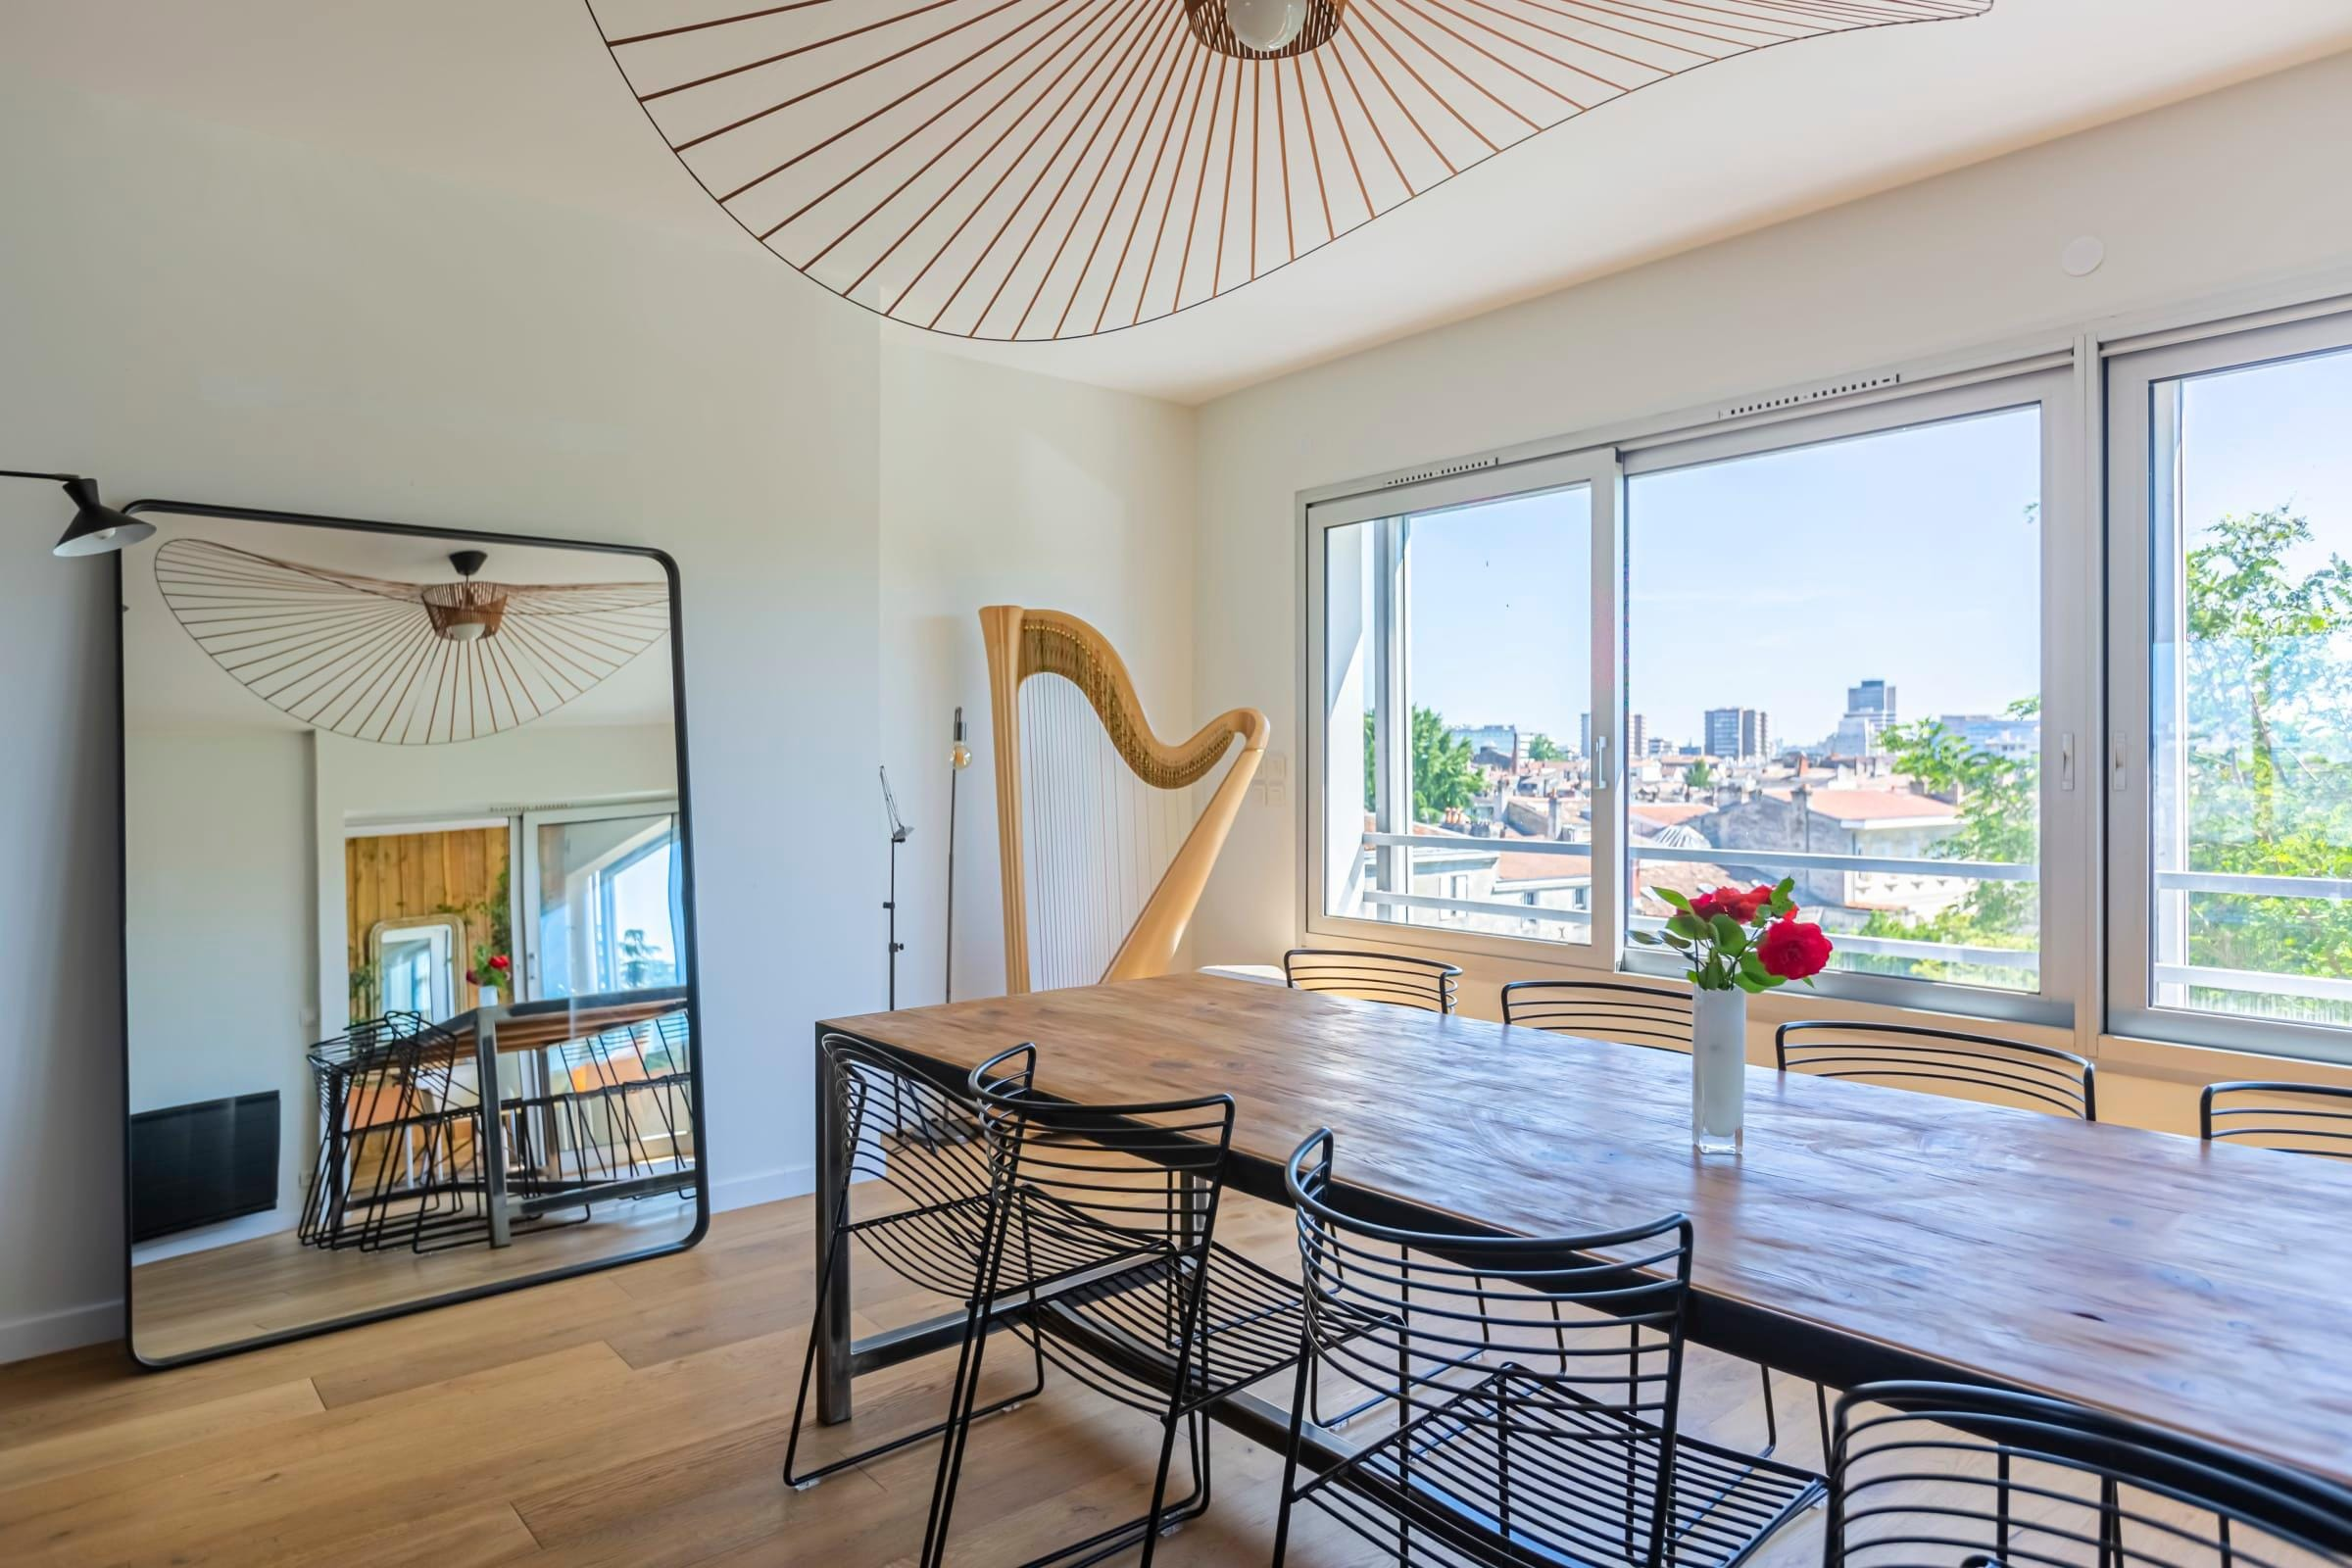 Property Image 2 - Spacious four bedroom Apartment with Rooftop Deck in Bordeaux